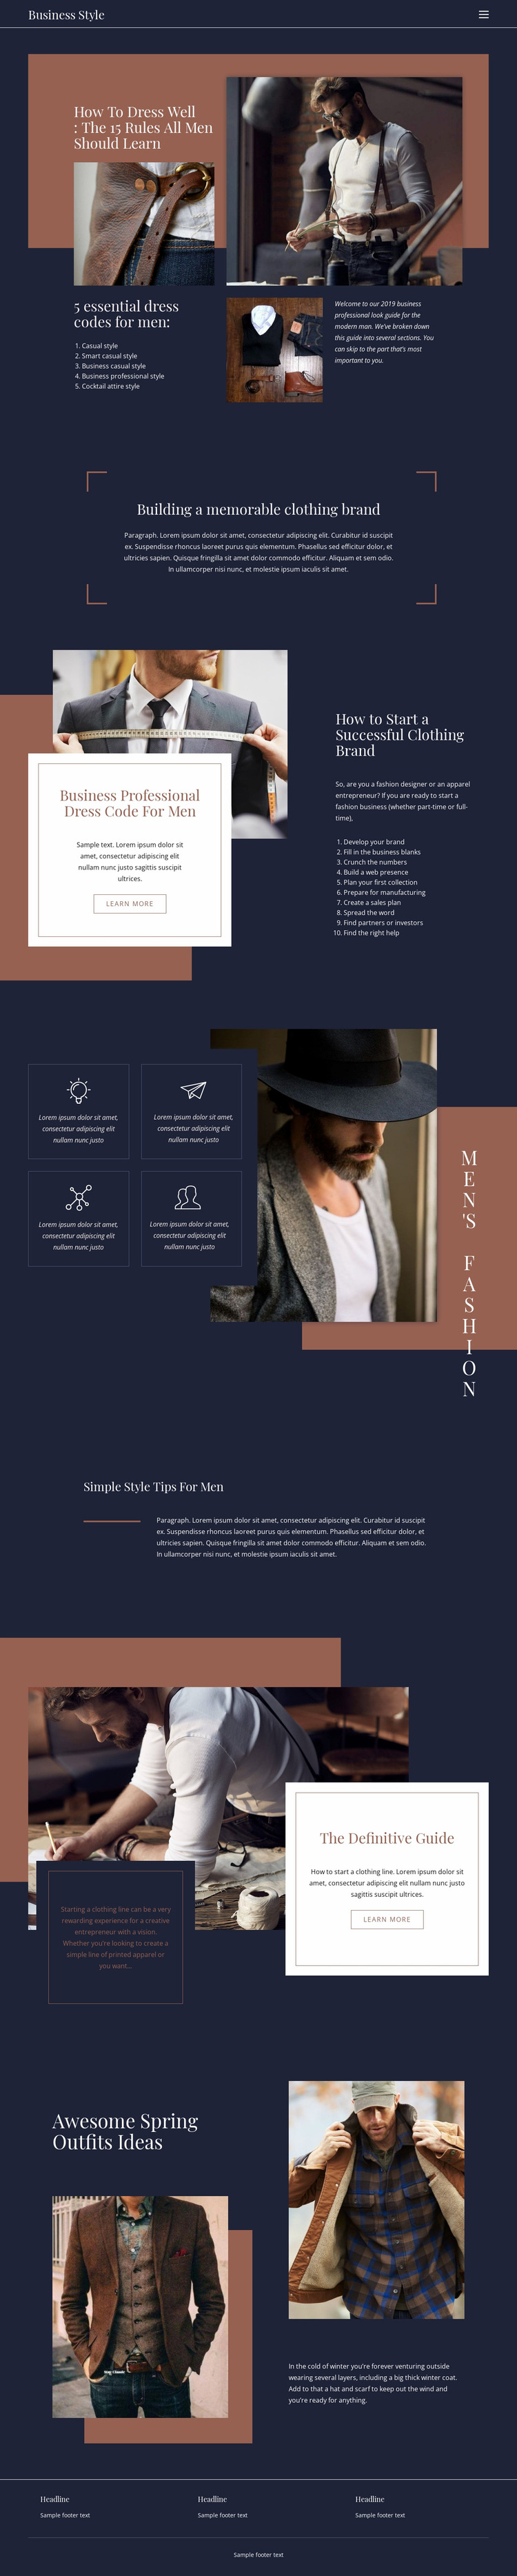 Winning rules of fashion Website Builder